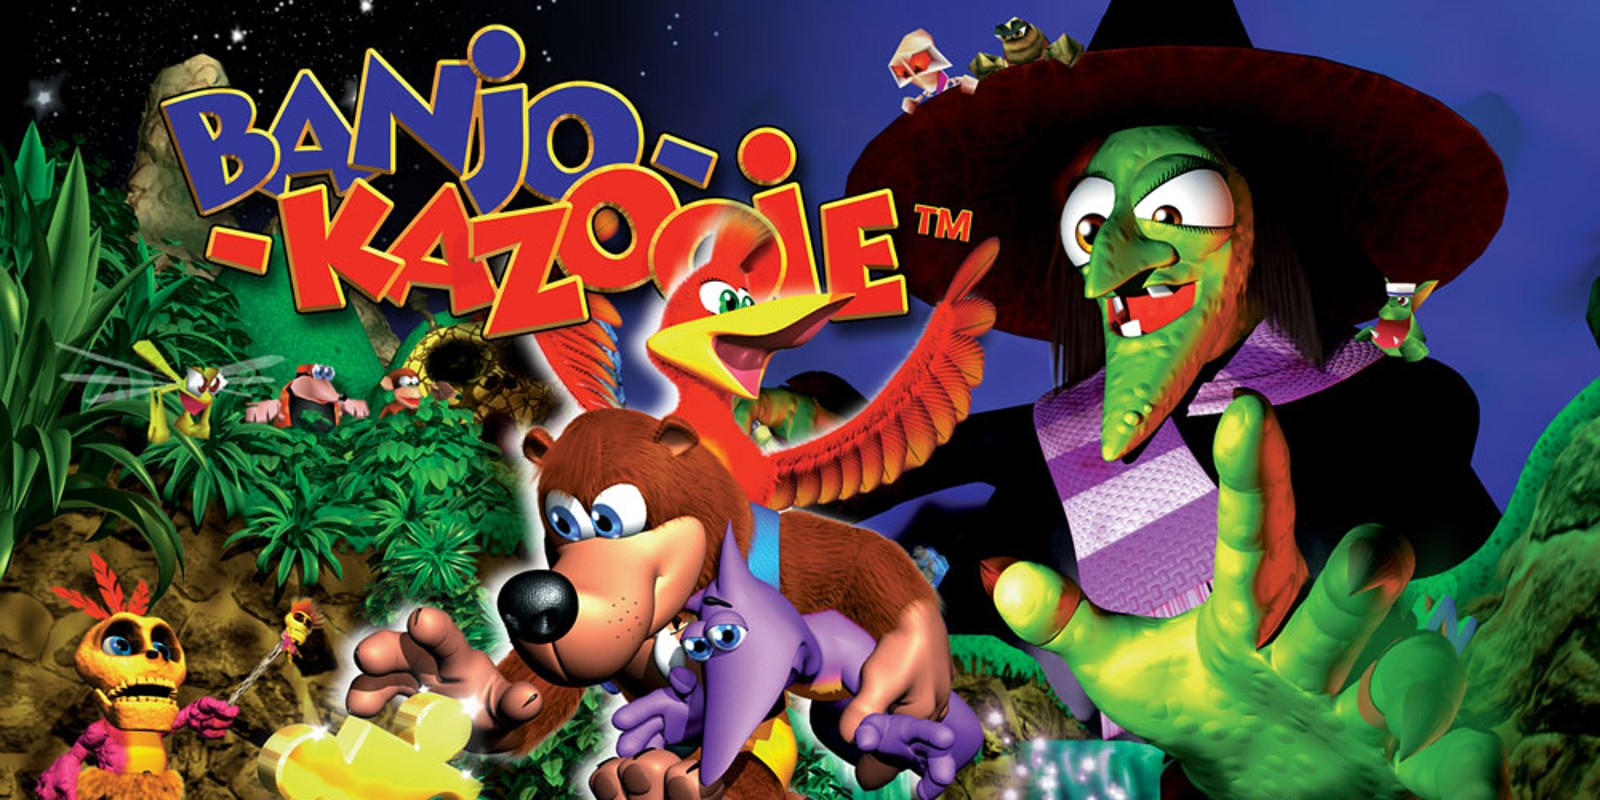 I was never able to beat my favorite game, Banjo-Kazooie, as a kid. That changes now.